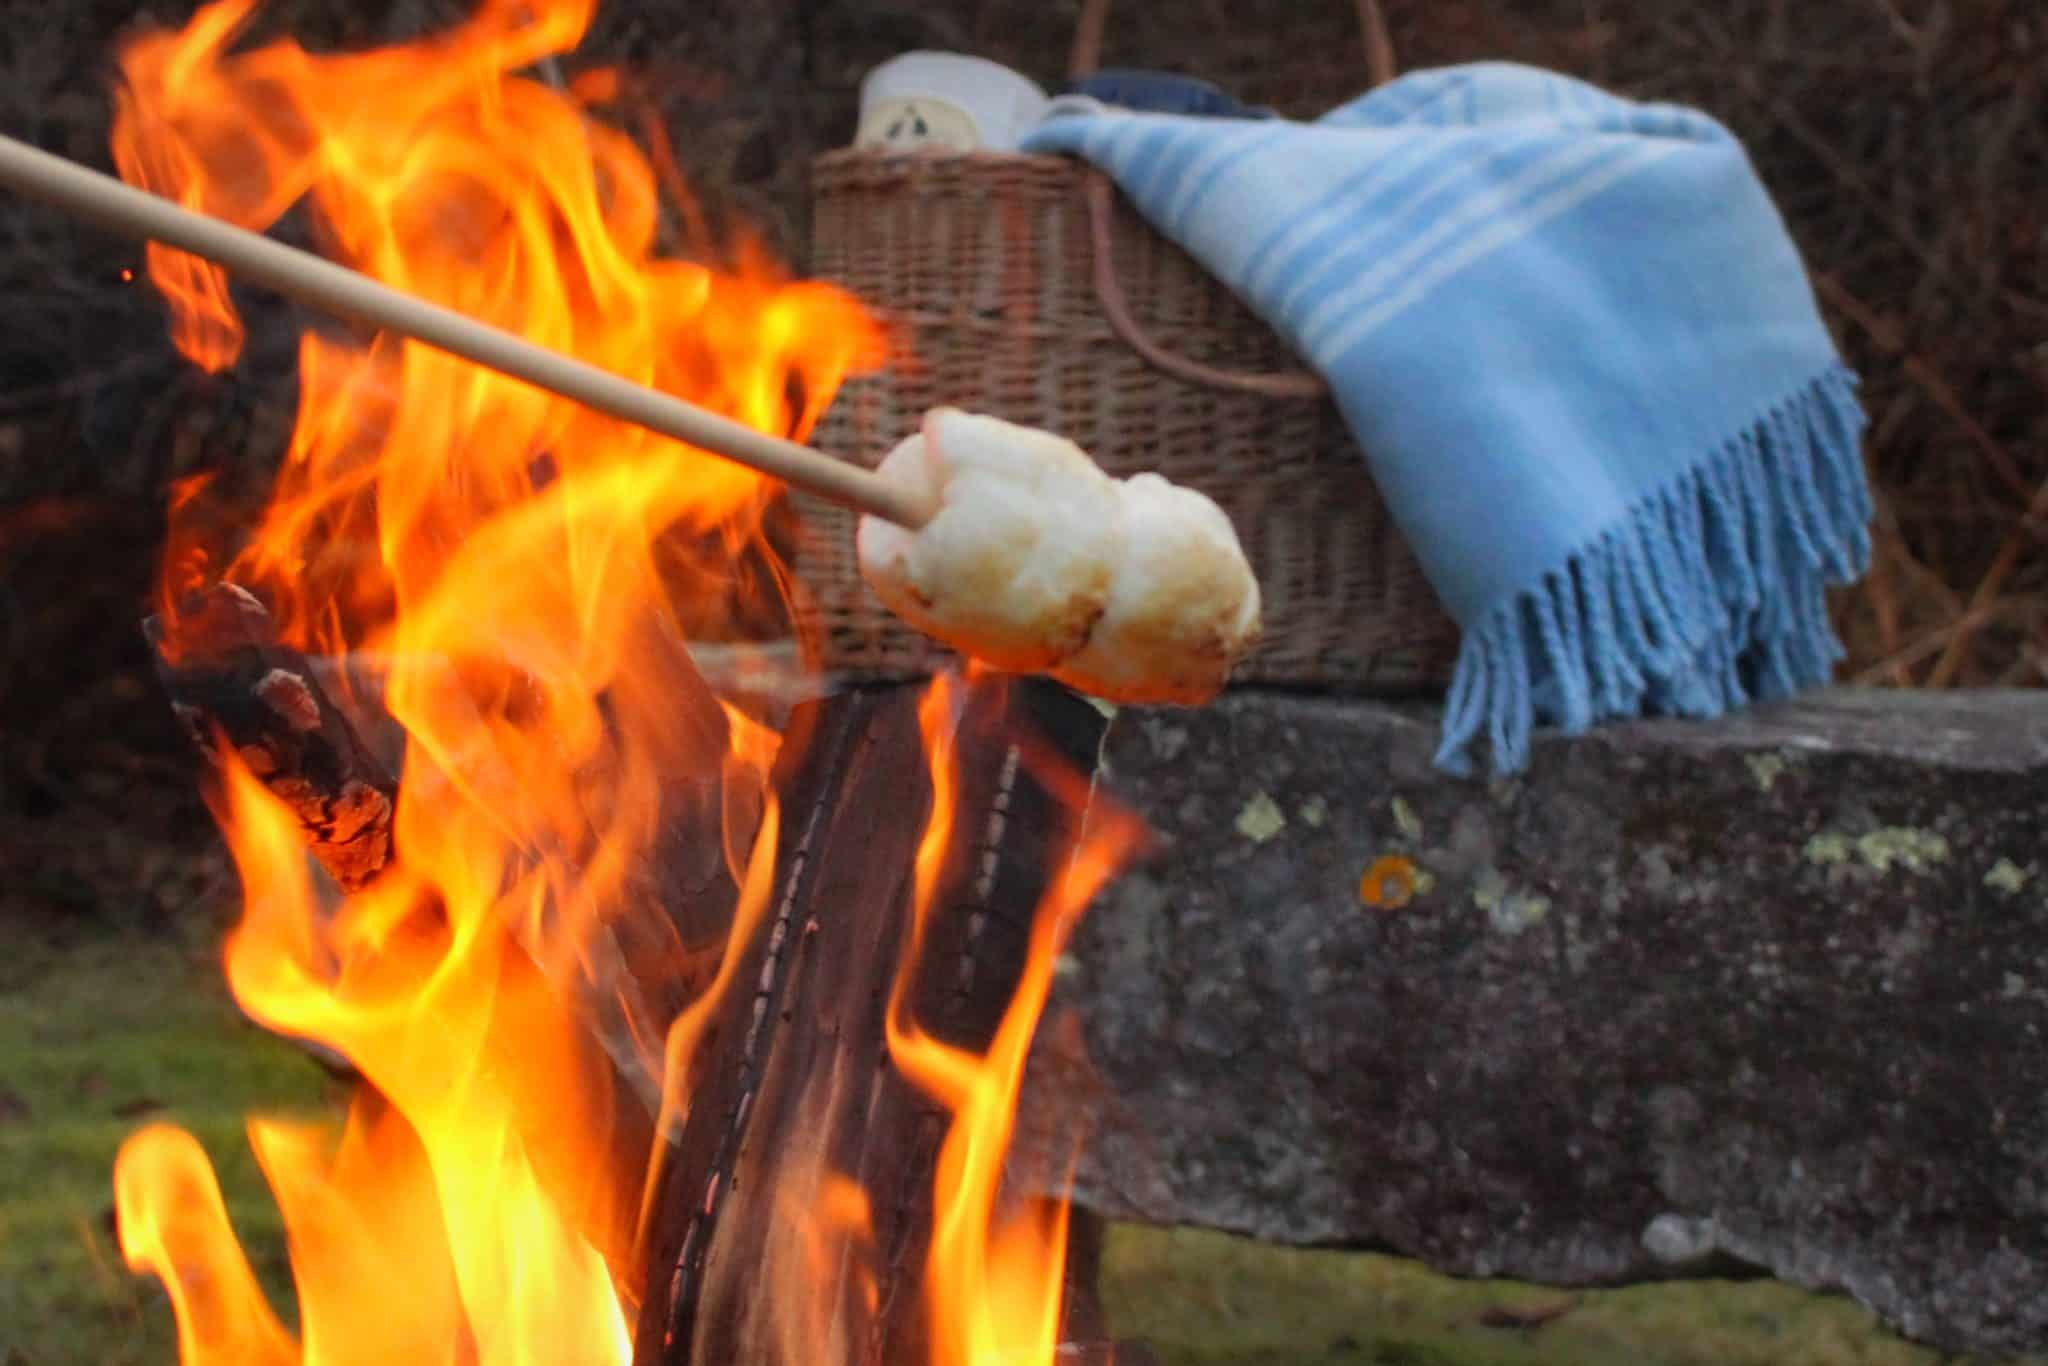 Close up of a stick with marshmallows over a fire with a bench, basket and blue blanket in the background